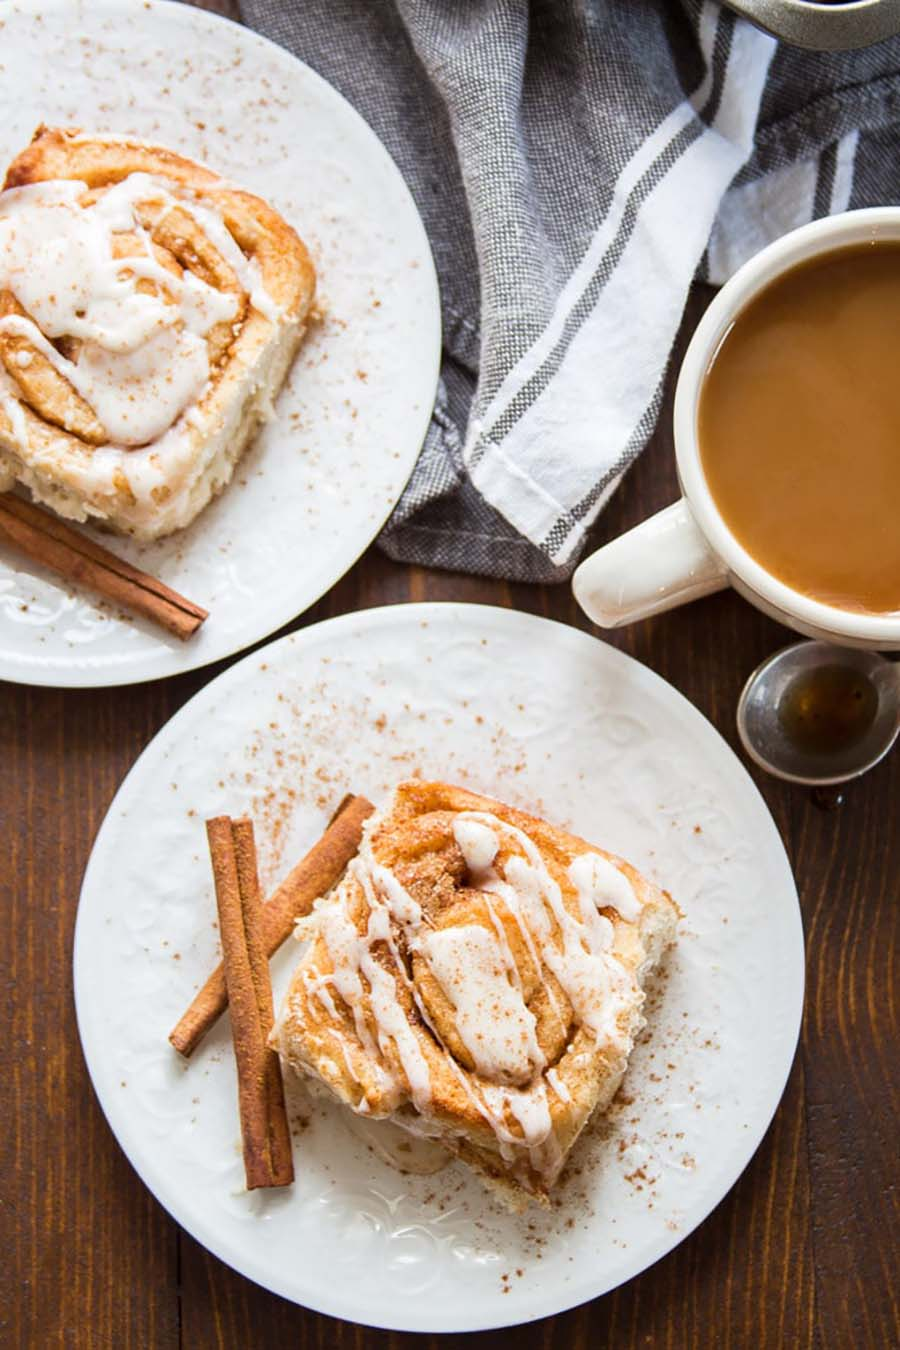 An overhead view of two plates with large cinnamon rolls on them with a cup of coffee sitting nearby.